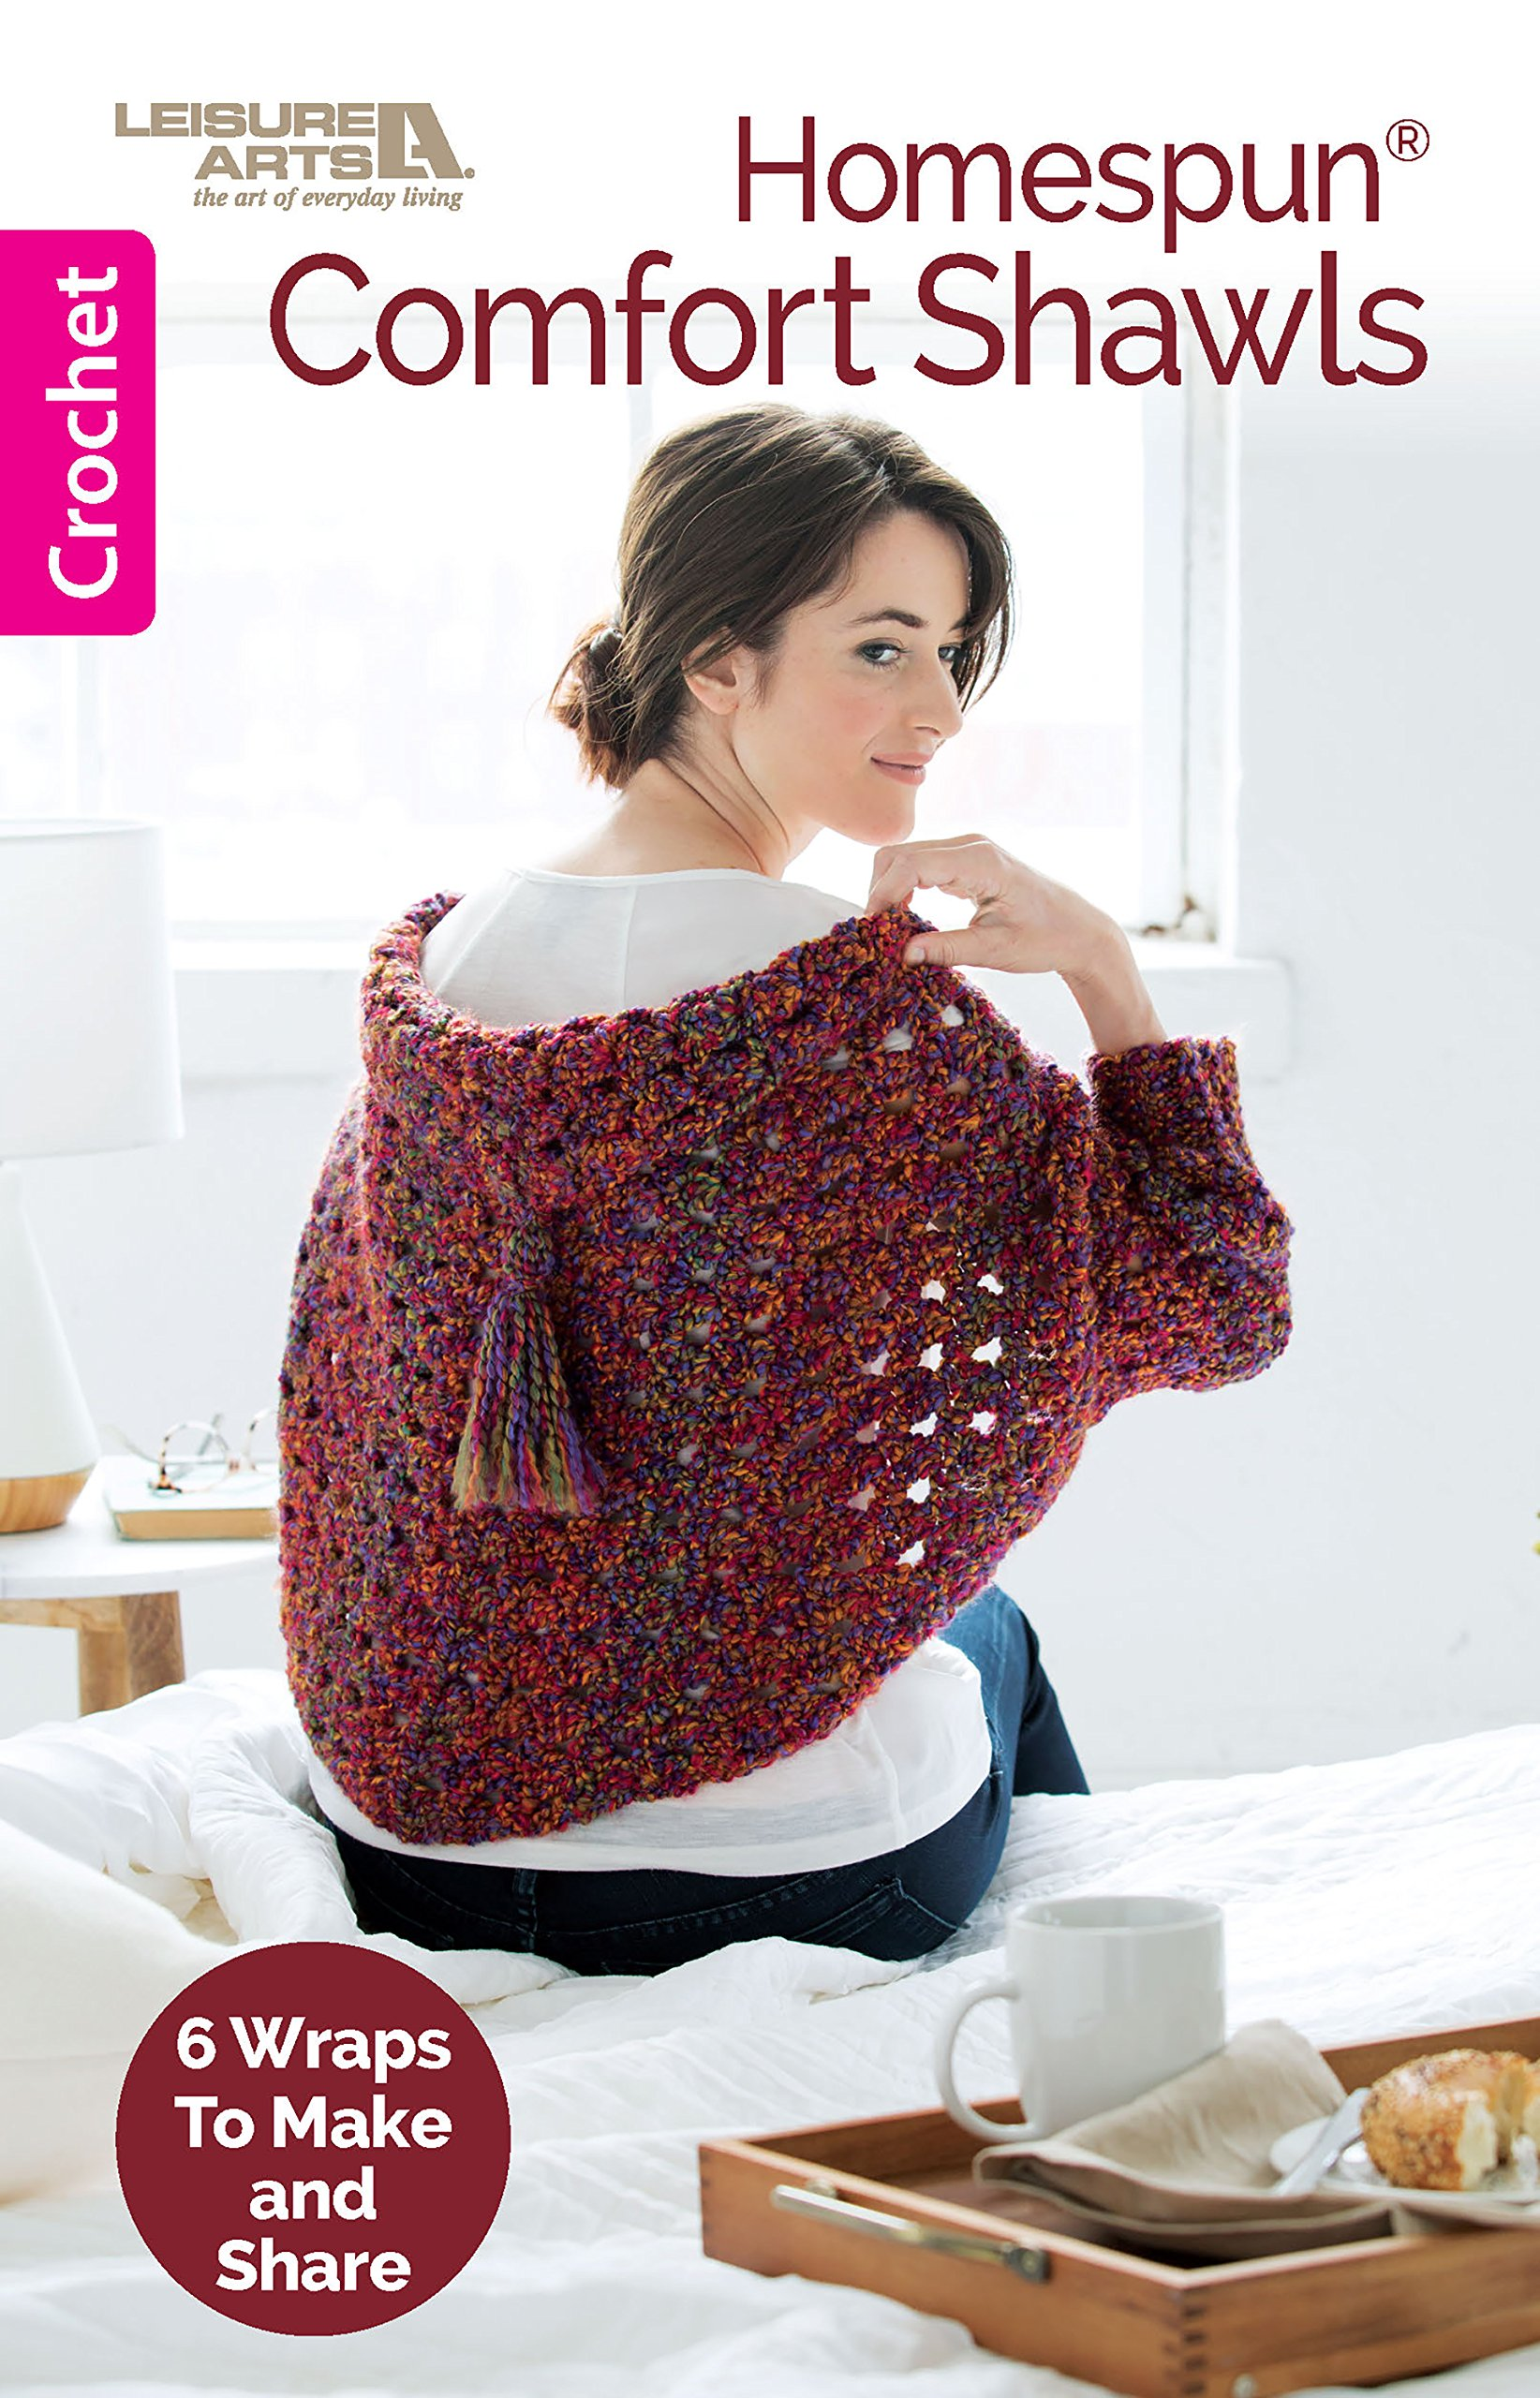 Homespun Comfort Shawls: Six Wraps To Make and Share (Crochet) Paperback –  March 15, 2018